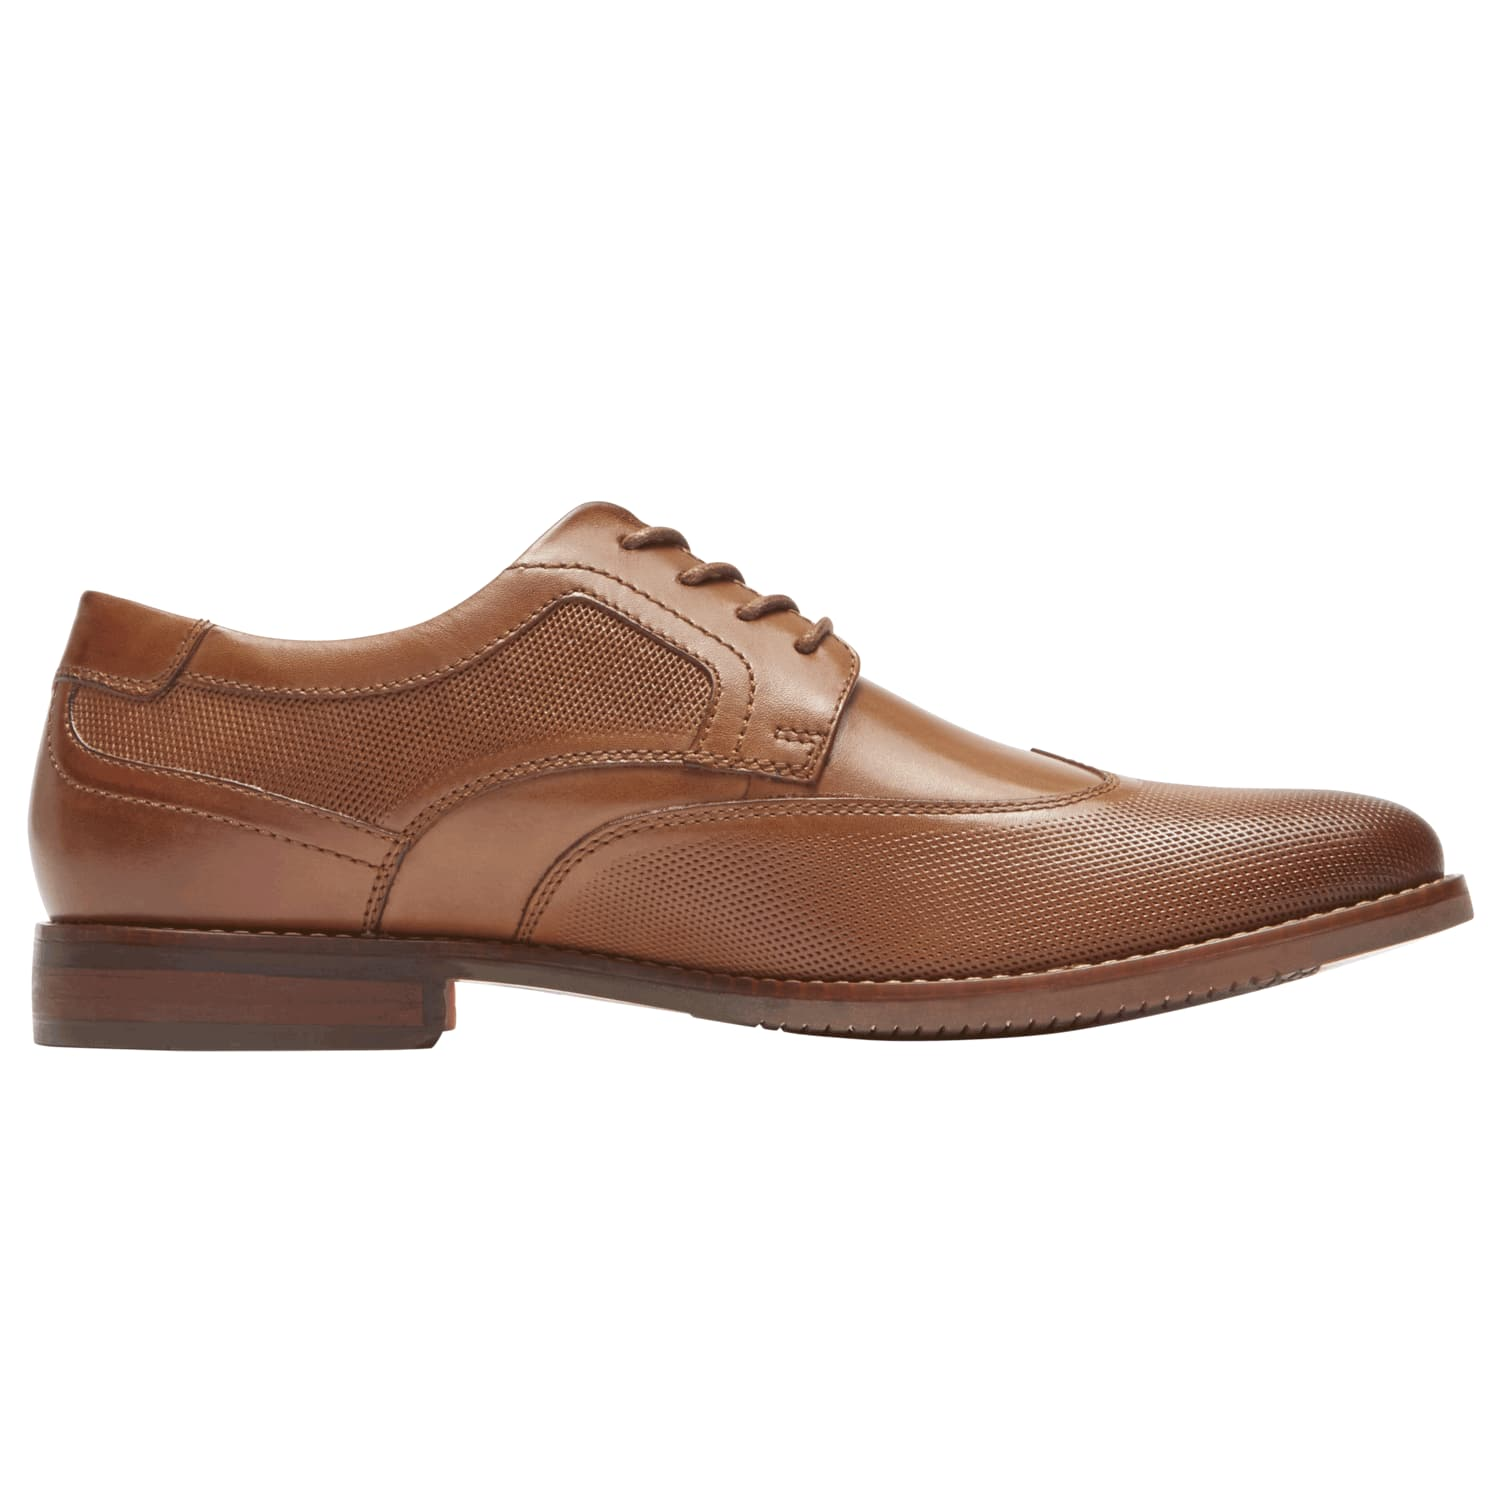 Rockport Friends and Family Sale: Extra 30% to 40% Off Select Men's and Women's Shoes + Free Shipping